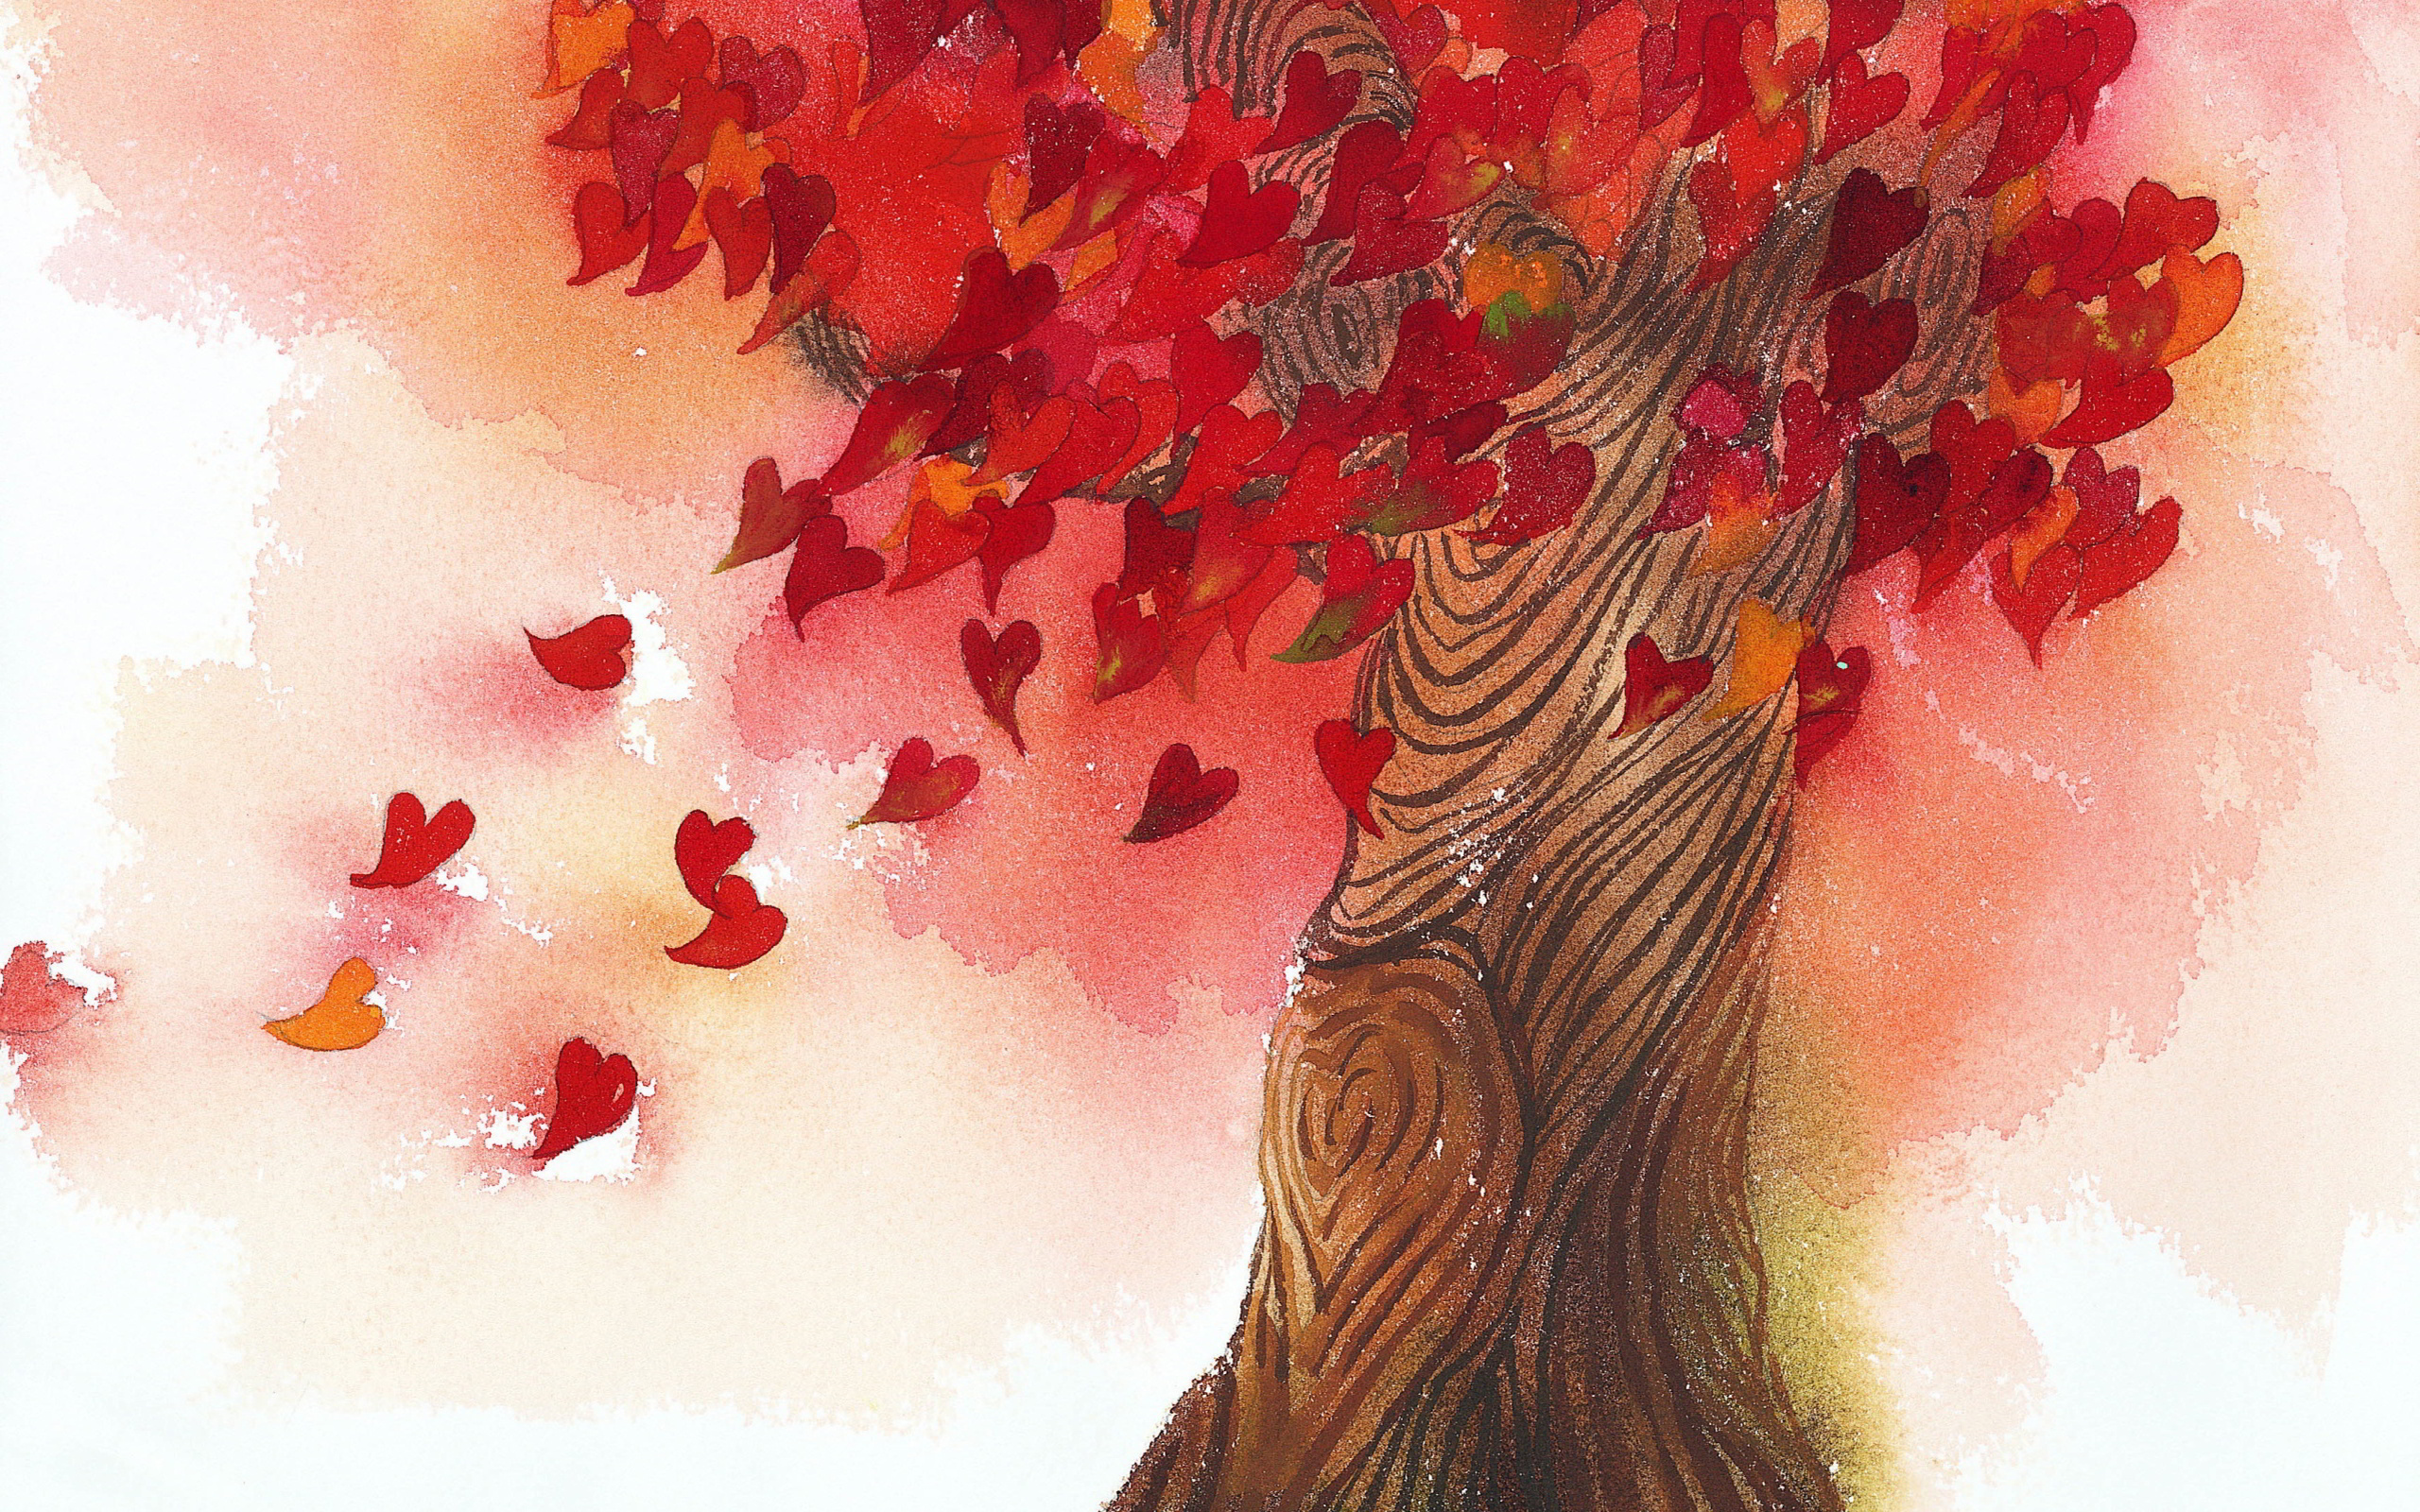 Tree heart leaves painting